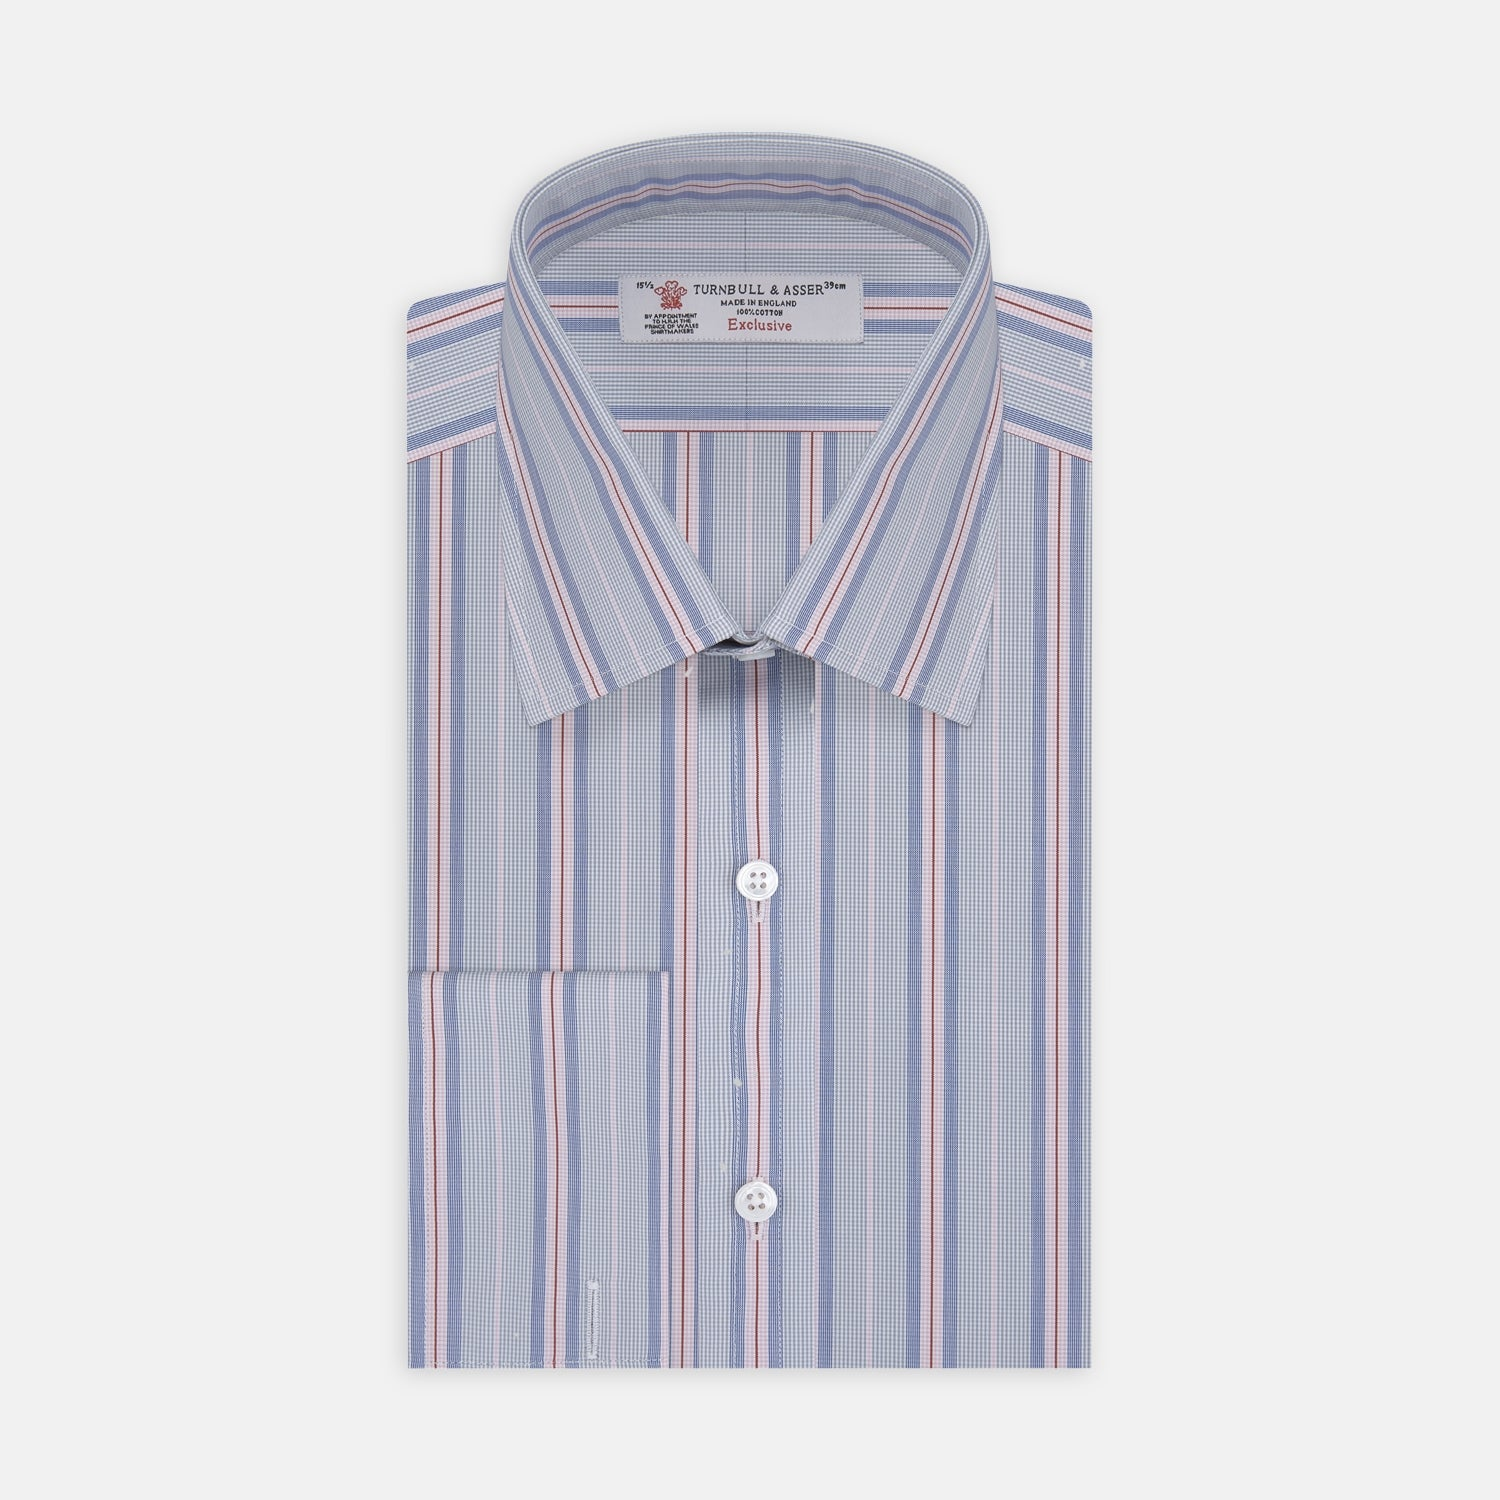 Grey, Pink and Navy Mixed Stripe Shirt with T&A Collar and Double Cuffs